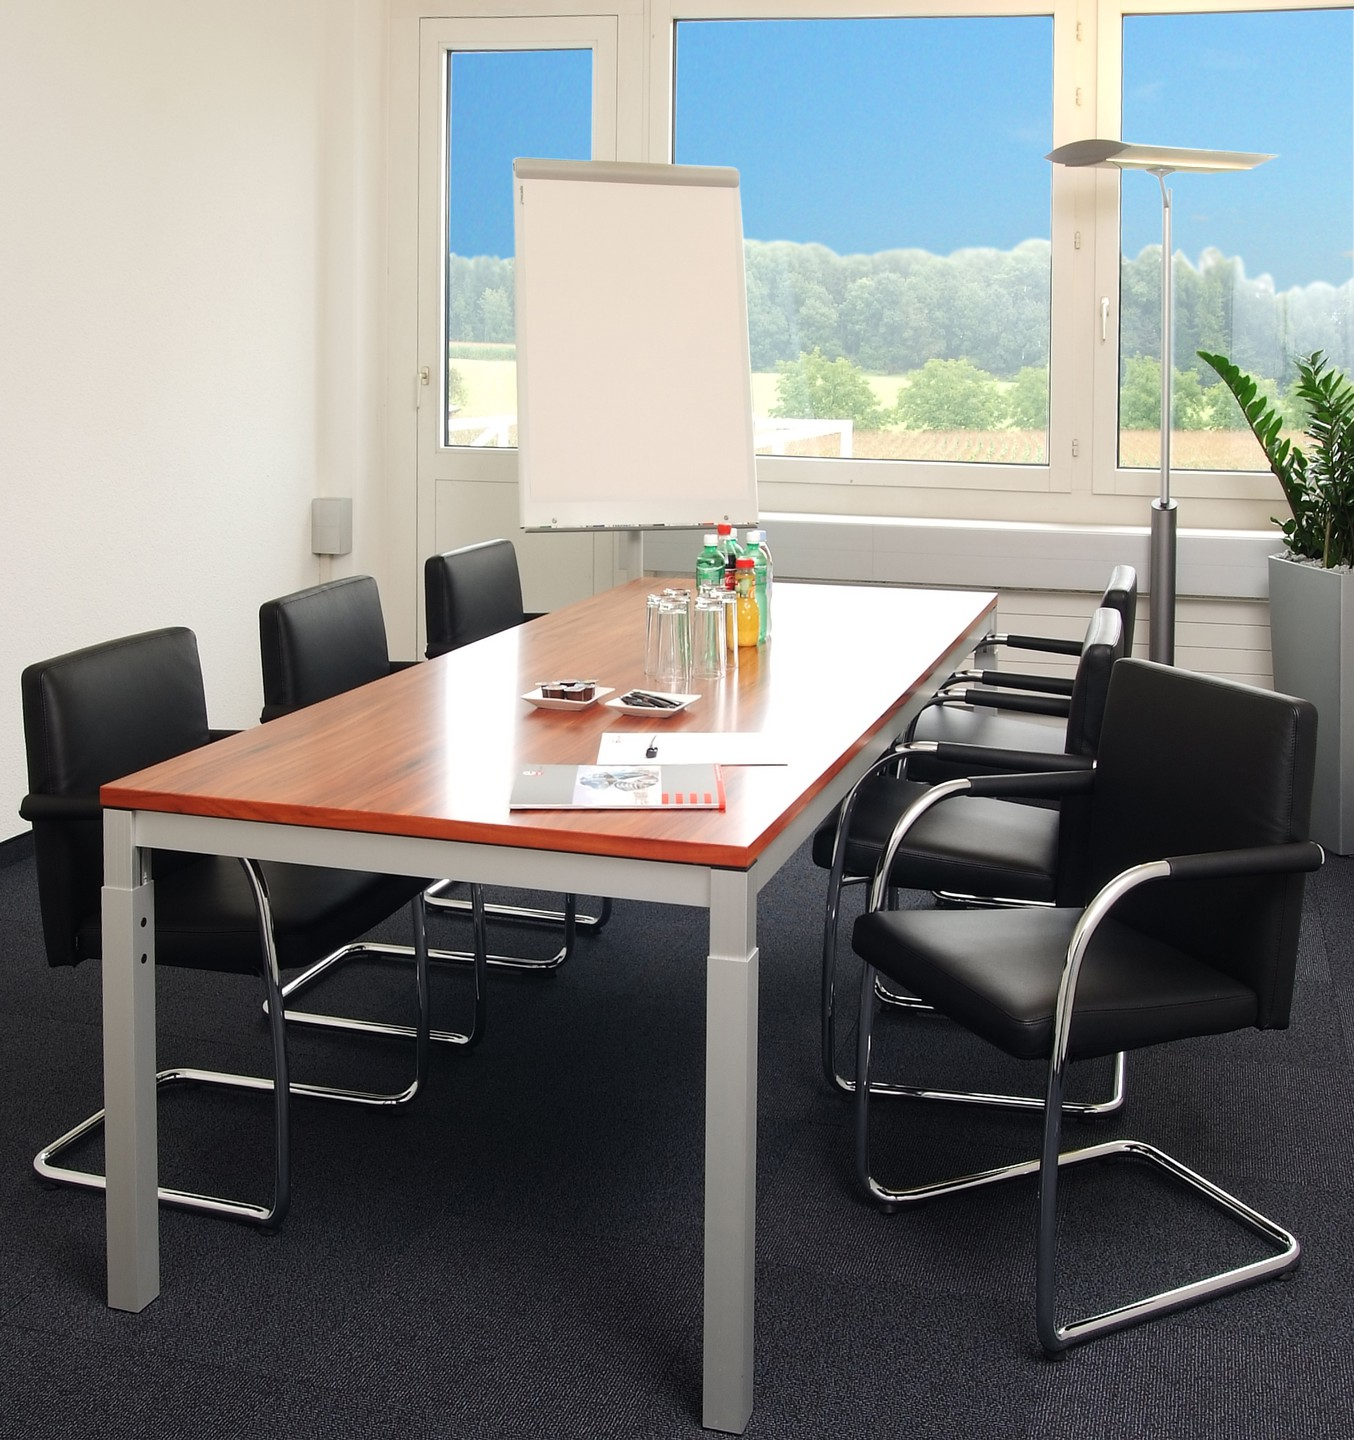 Rest of the World conference rooms Meeting room ecos office hünenberg - small conference room image 0